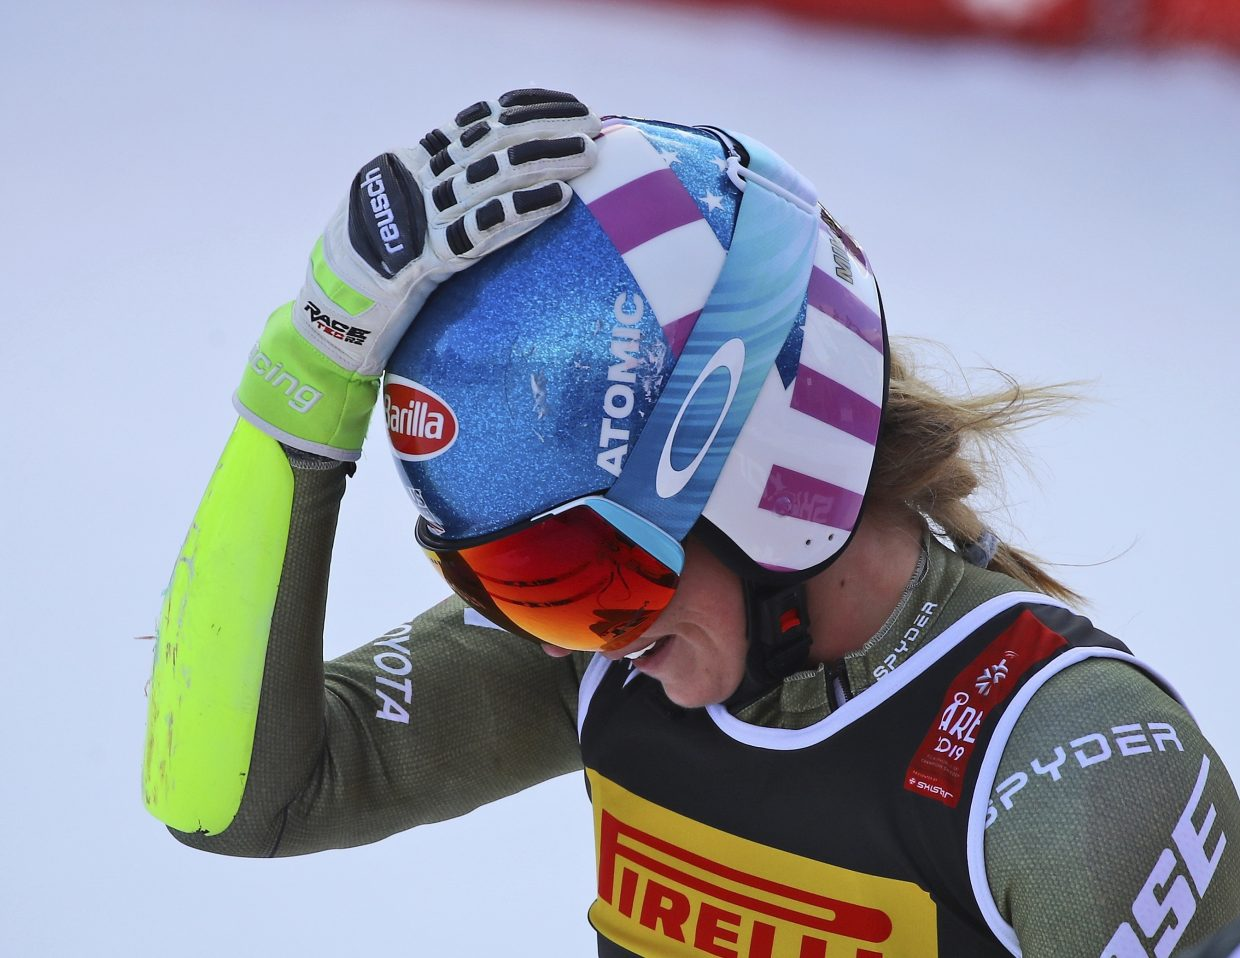 Mikaela Shiffrin continues to move into elite company with four gold medals in her career at the FIS Alpine World Ski Championships.